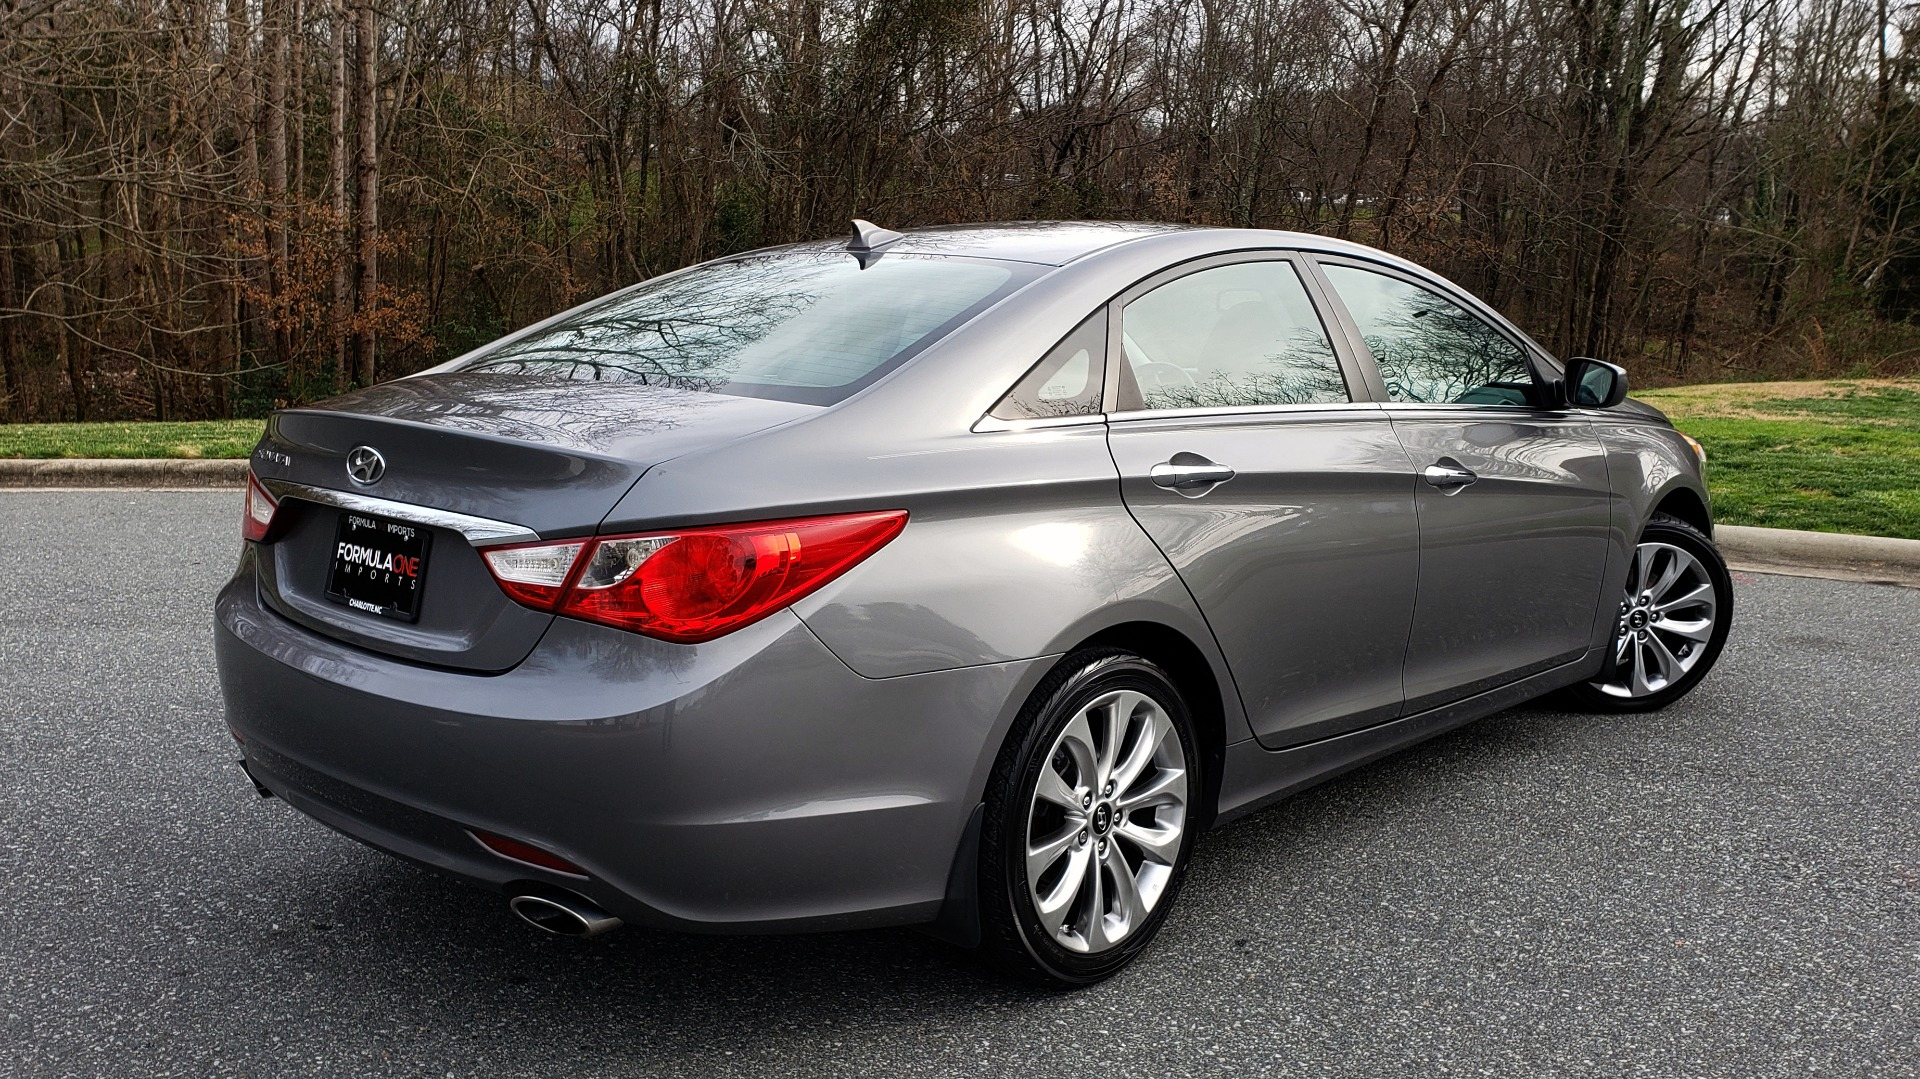 Used 2013 Hyundai SONATA SE AUTO / 2.4L 4-CYL / 6-SPD AUTO / VERY CLEAN for sale Sold at Formula Imports in Charlotte NC 28227 8